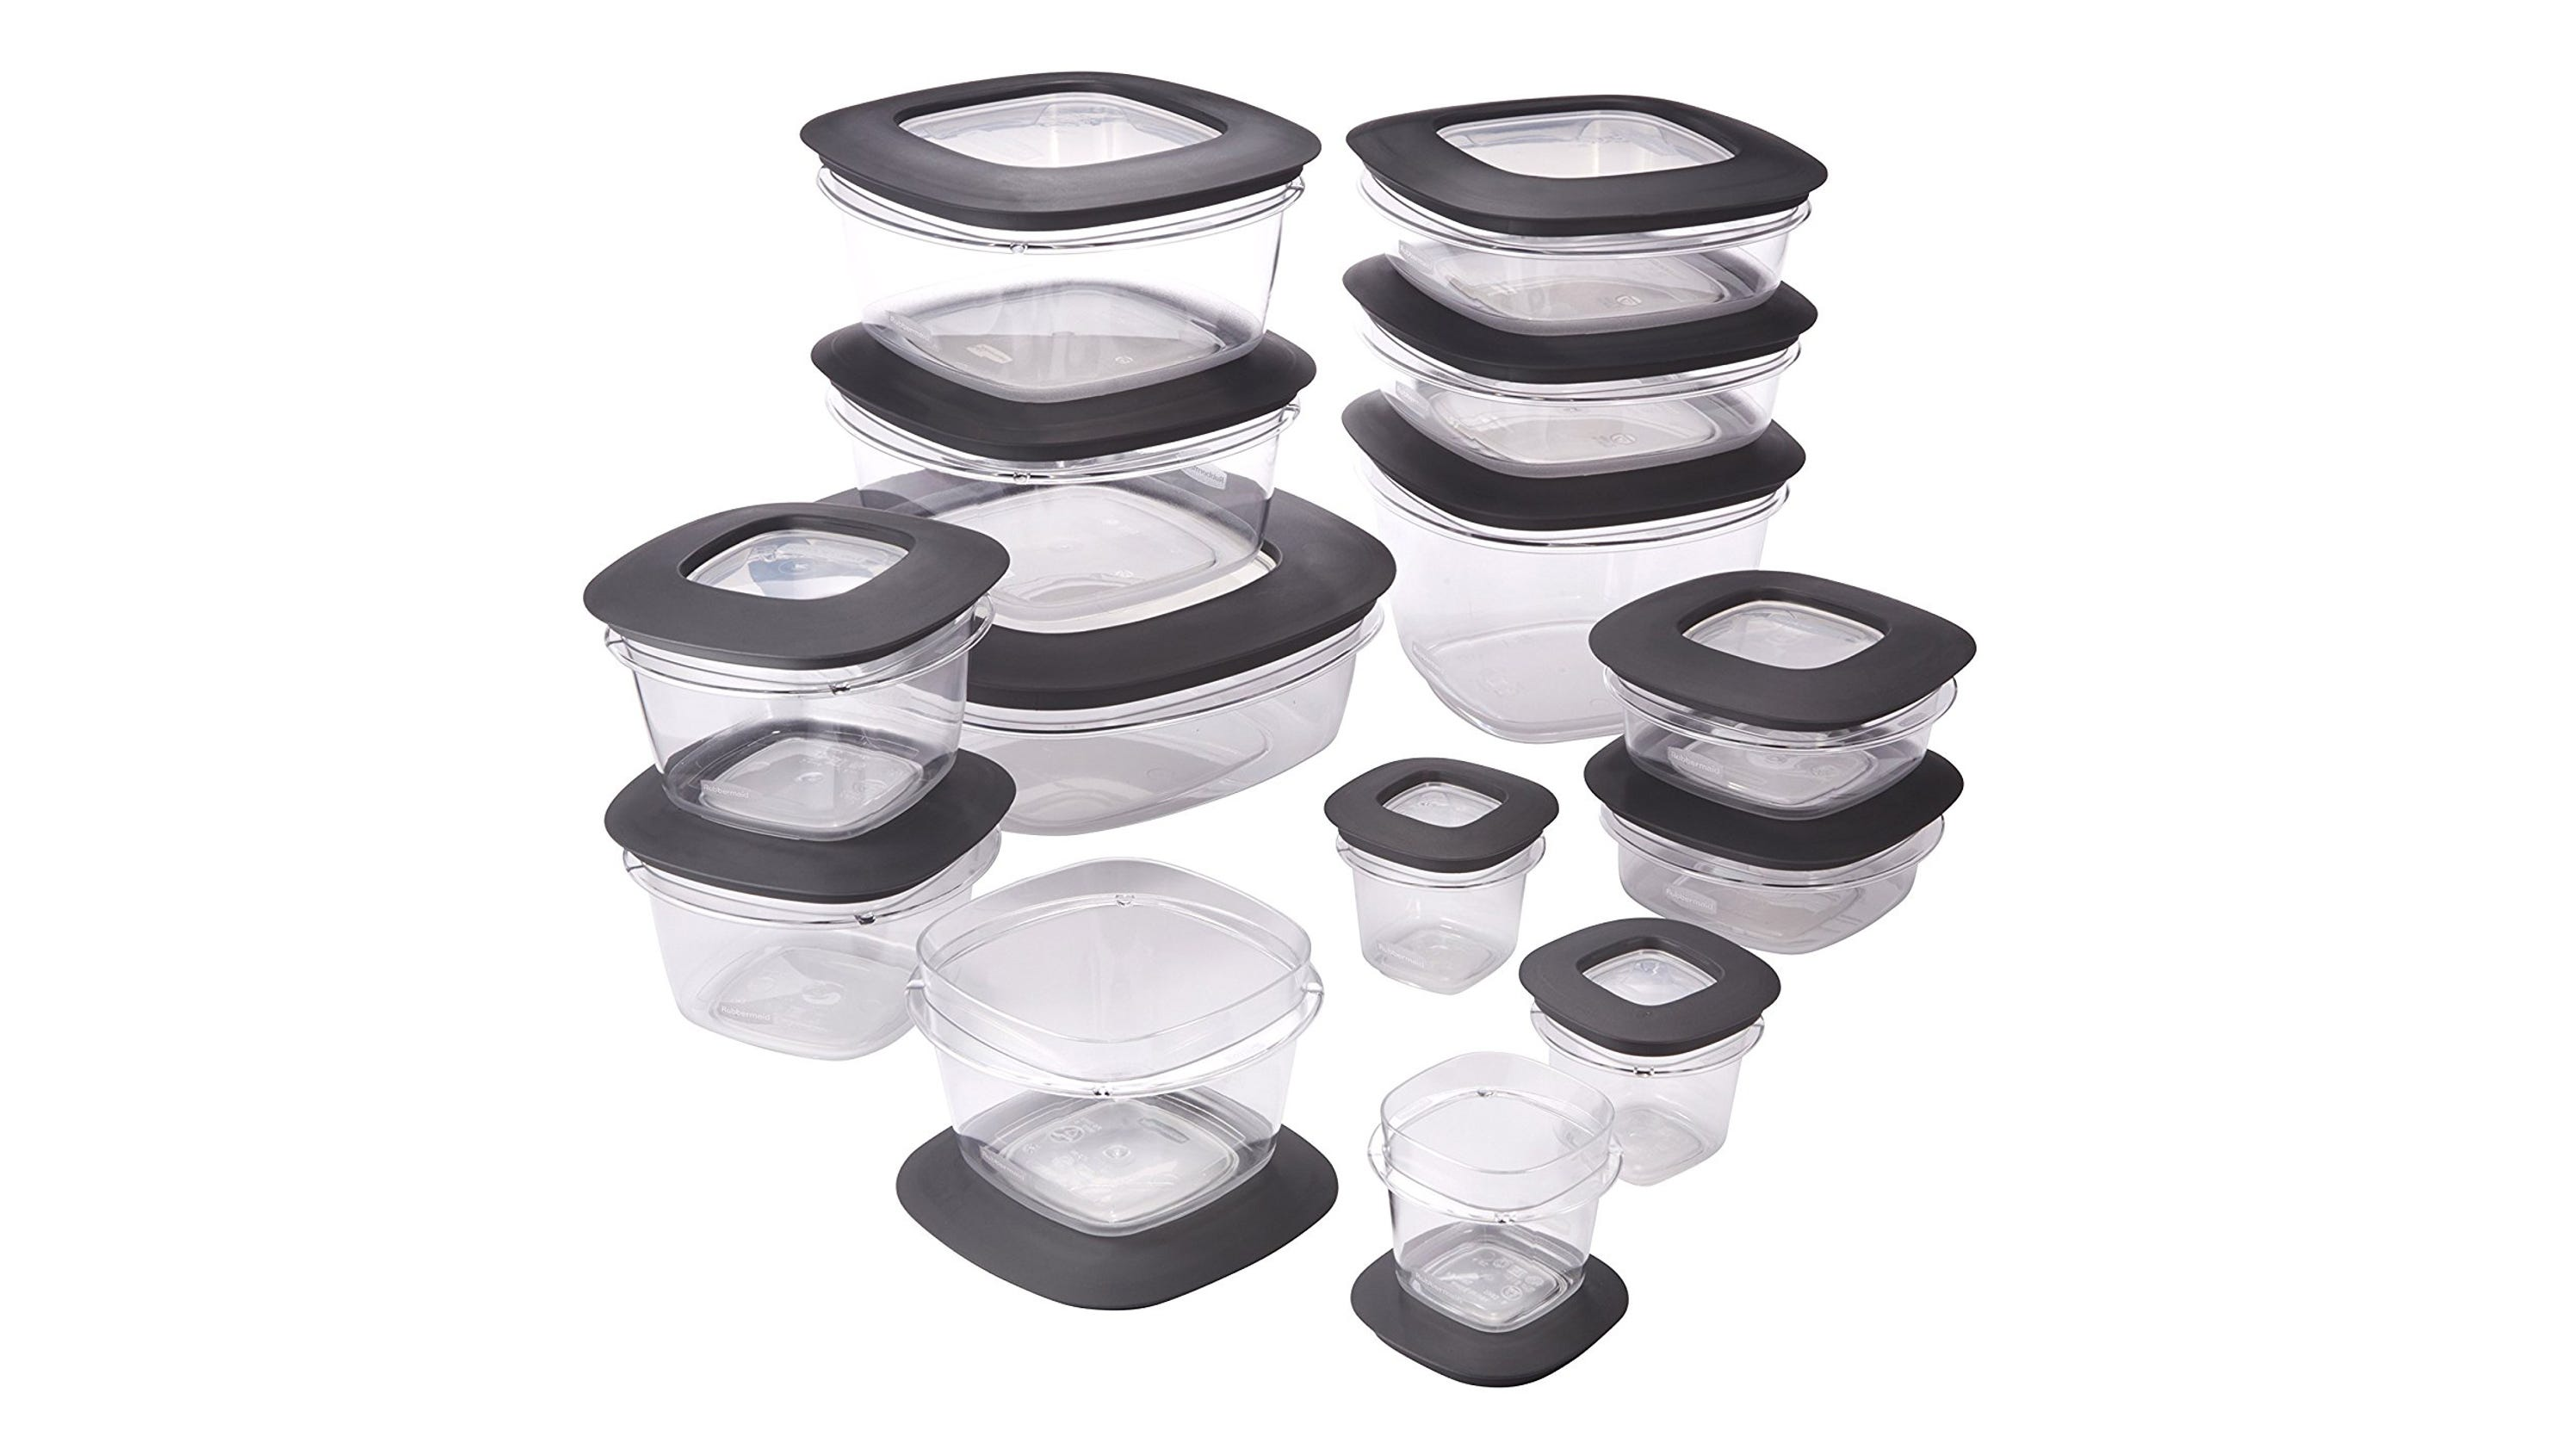 This Best Ing Rubbermaid Food Storage Set Is The Lowest Price Ever Right Now